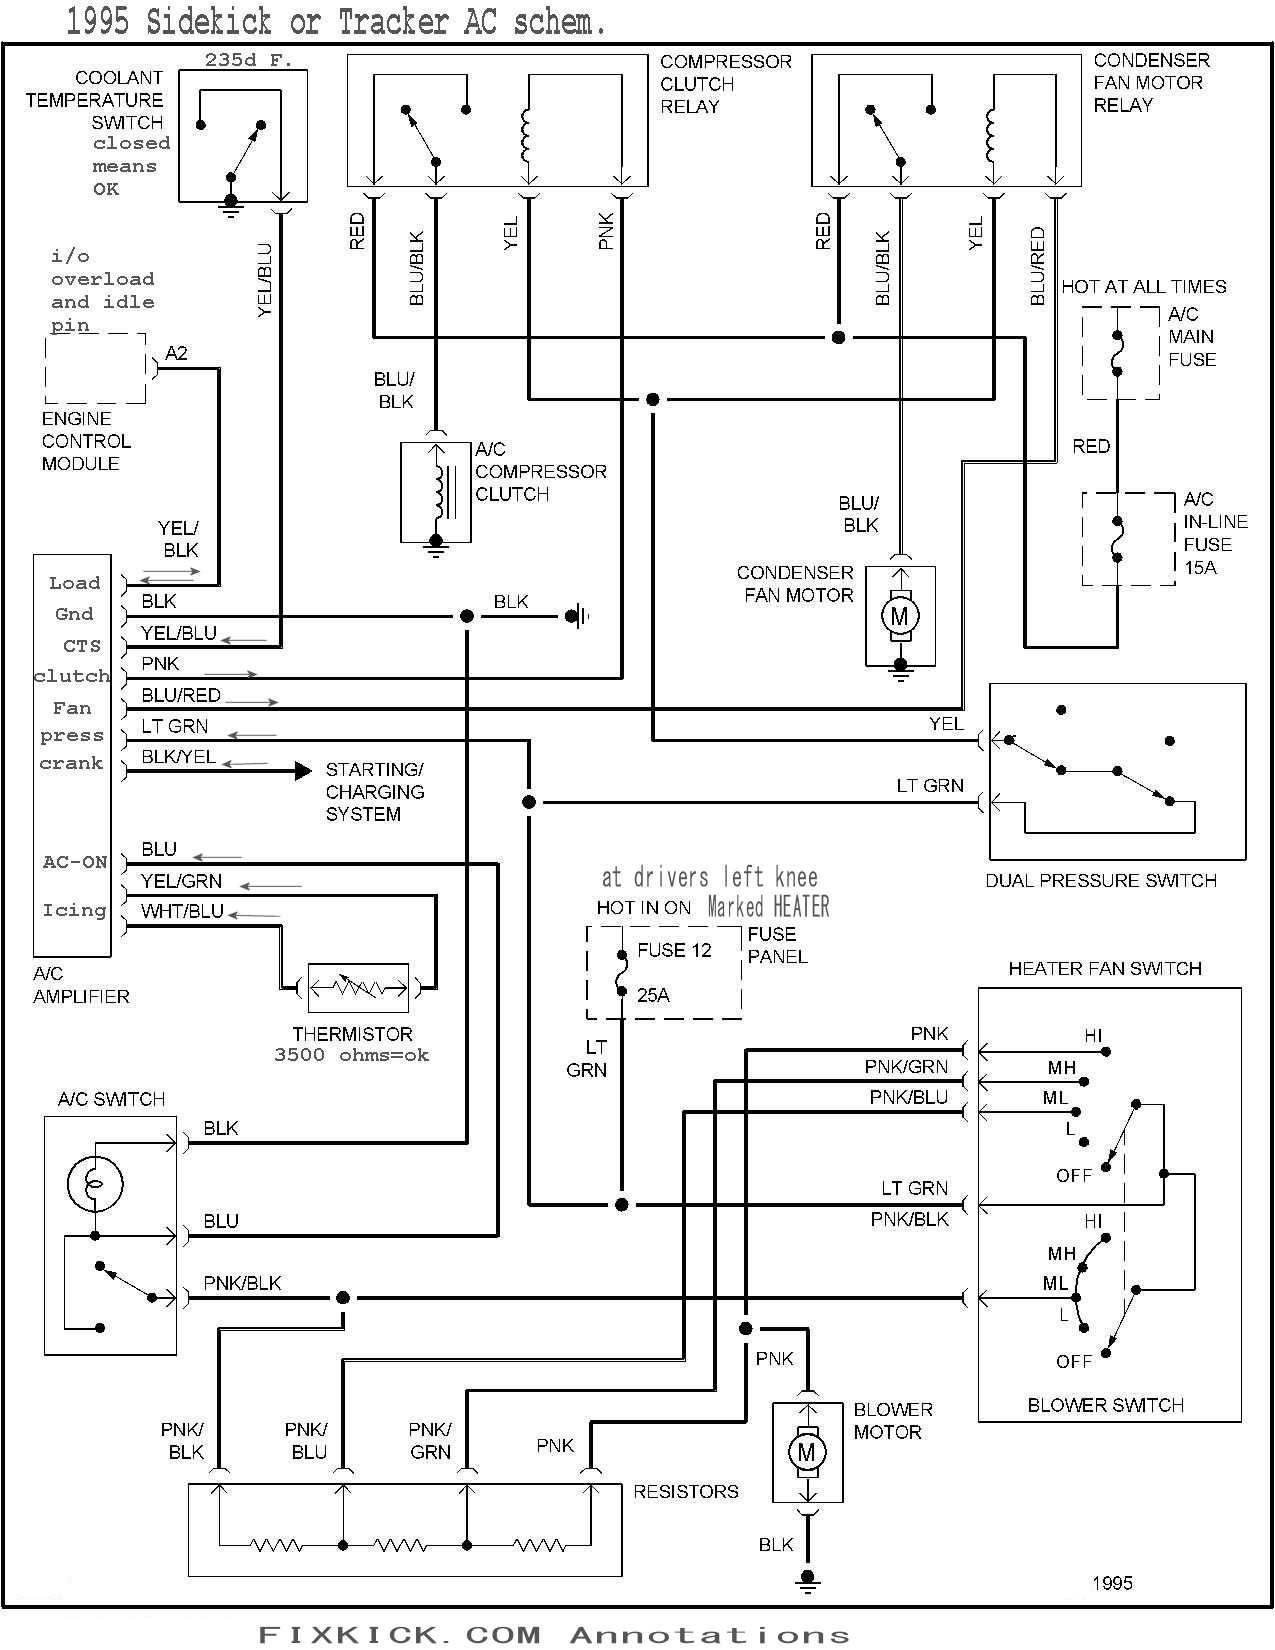 95 suzuki sidekick wiring diagram of a diy wiring diagrams u2022 rh dancesalsa co 1989 Suzuki Sidekick Wiring Diagrams 1998 Suzuki Sidekick